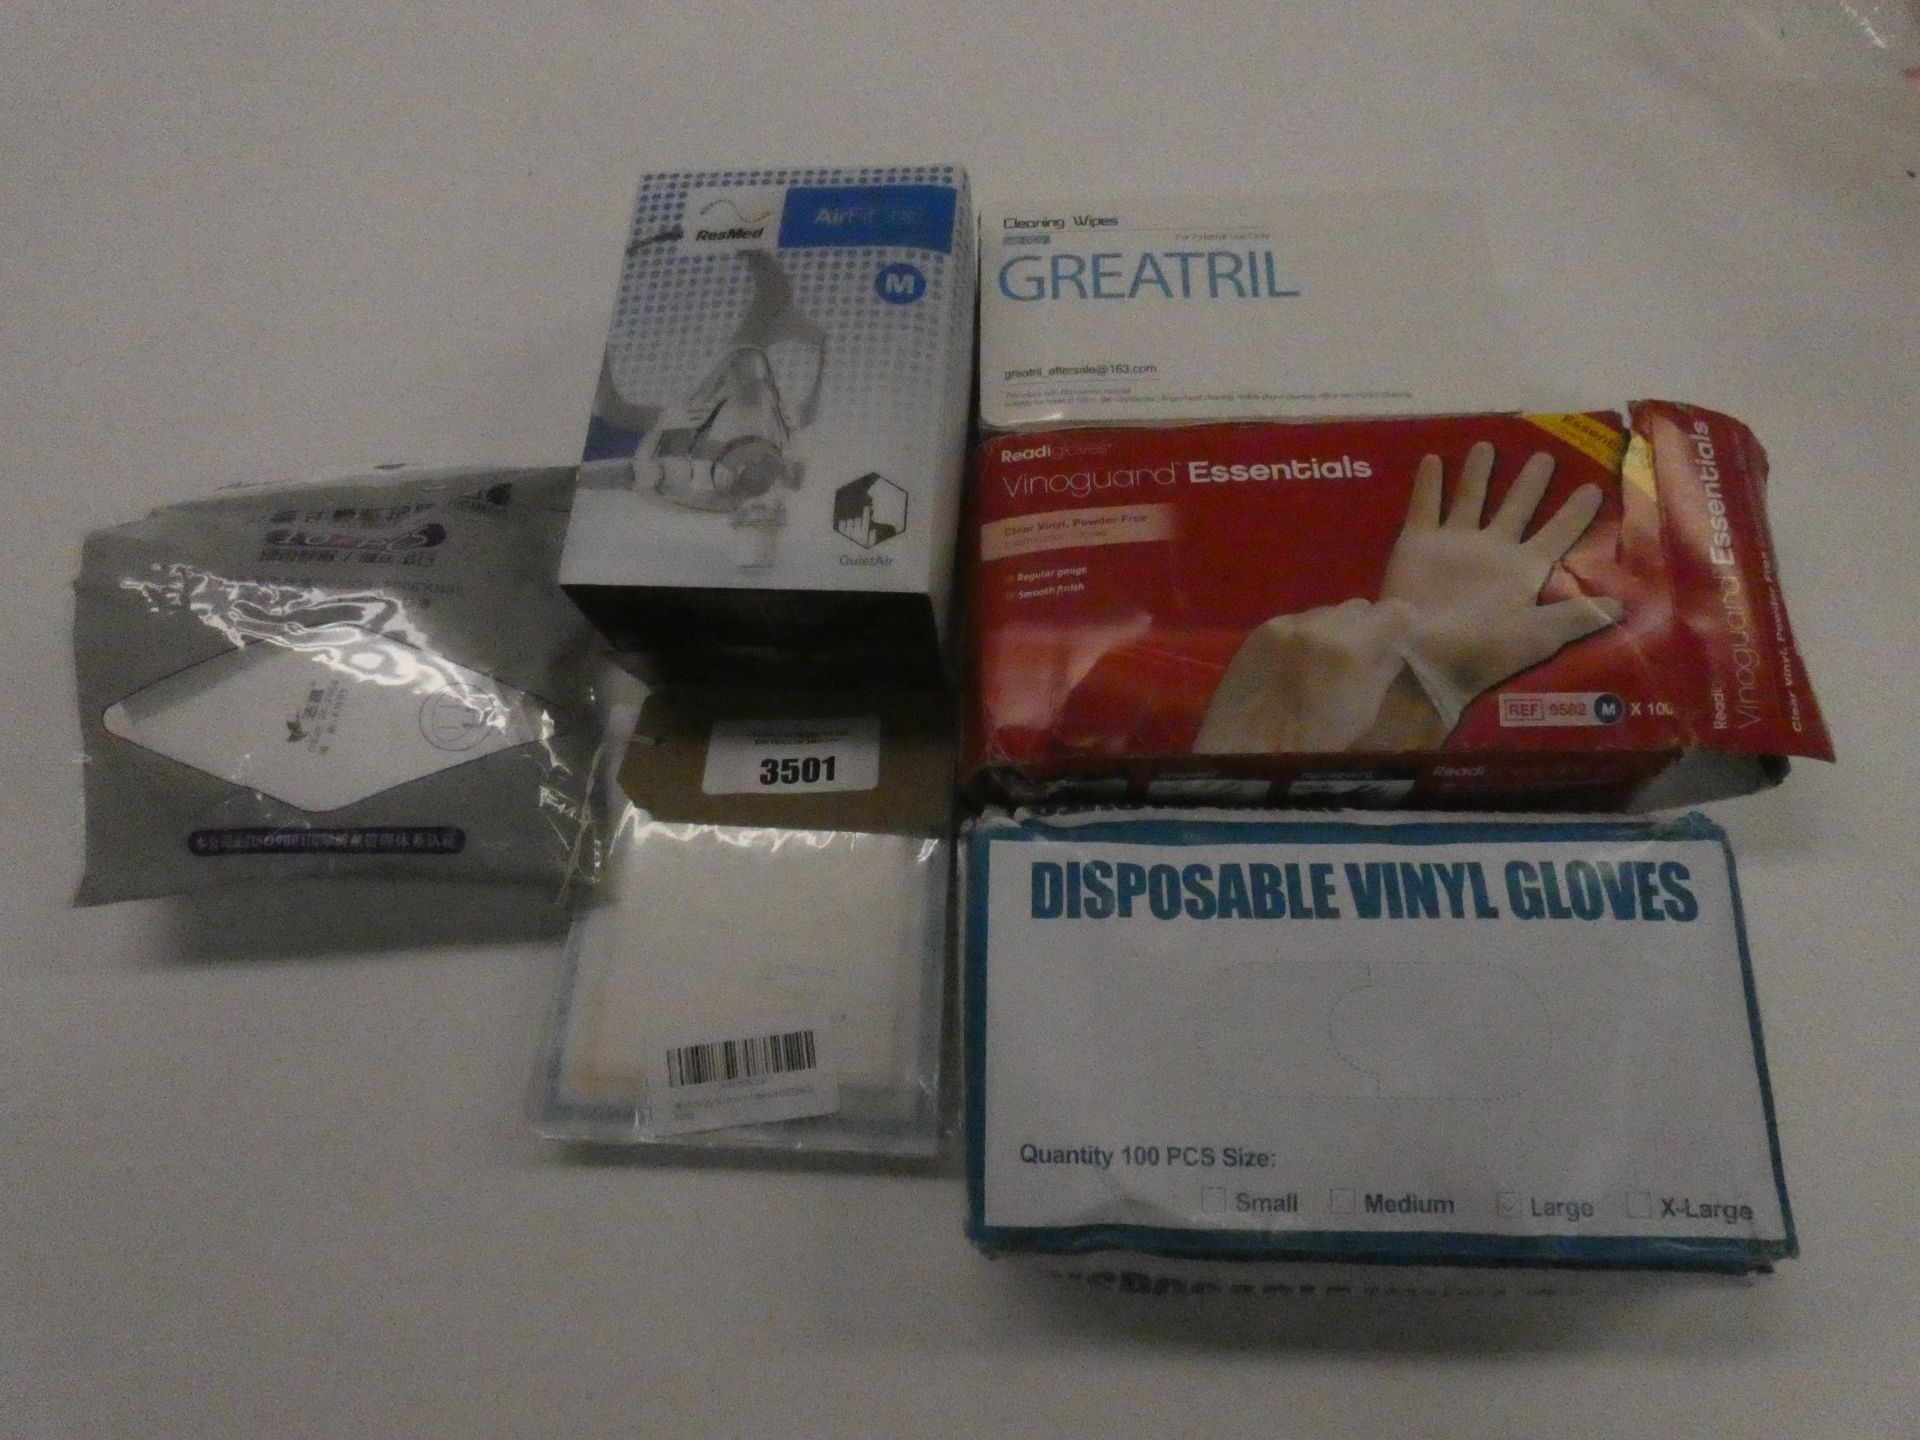 Lot 3501 - RedMed AirFit F20, pack of 10x KN95 masks, disposable gloves, cleaning wipes, Melolin wound